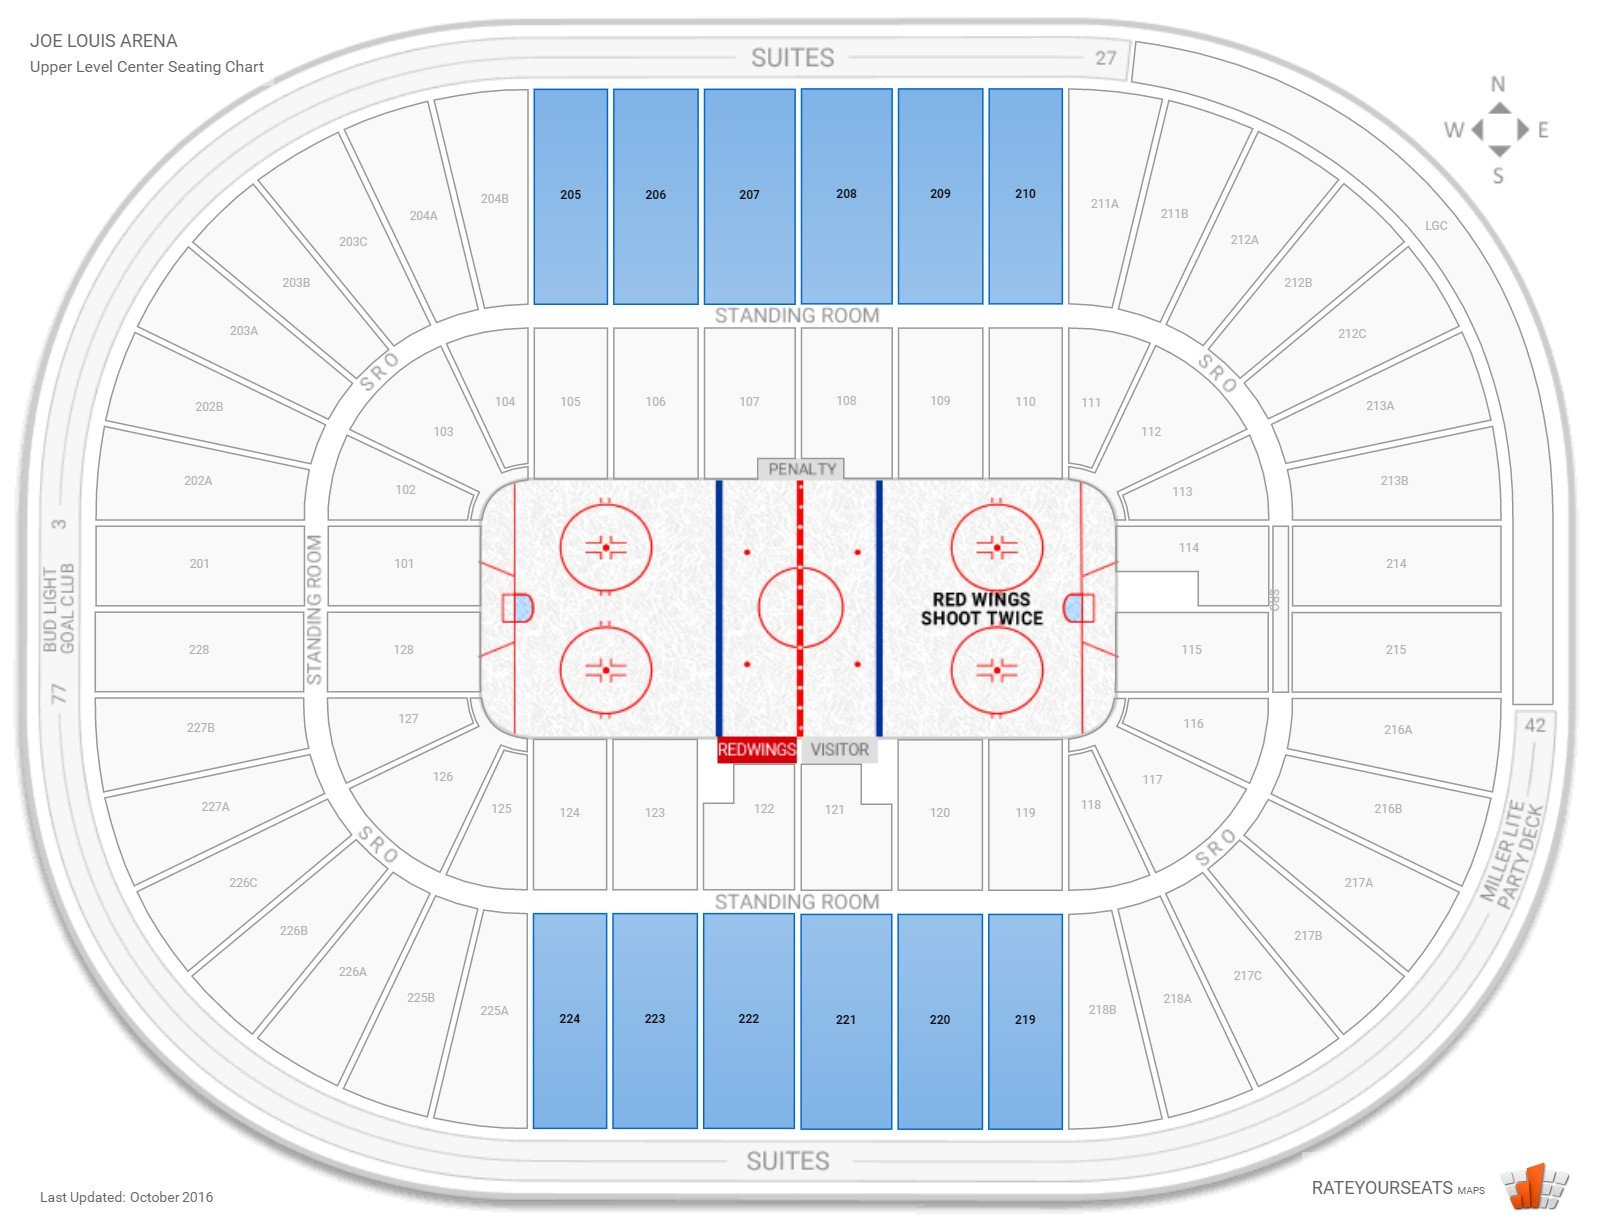 Joe Louis Arena Upper Level Center seating chart